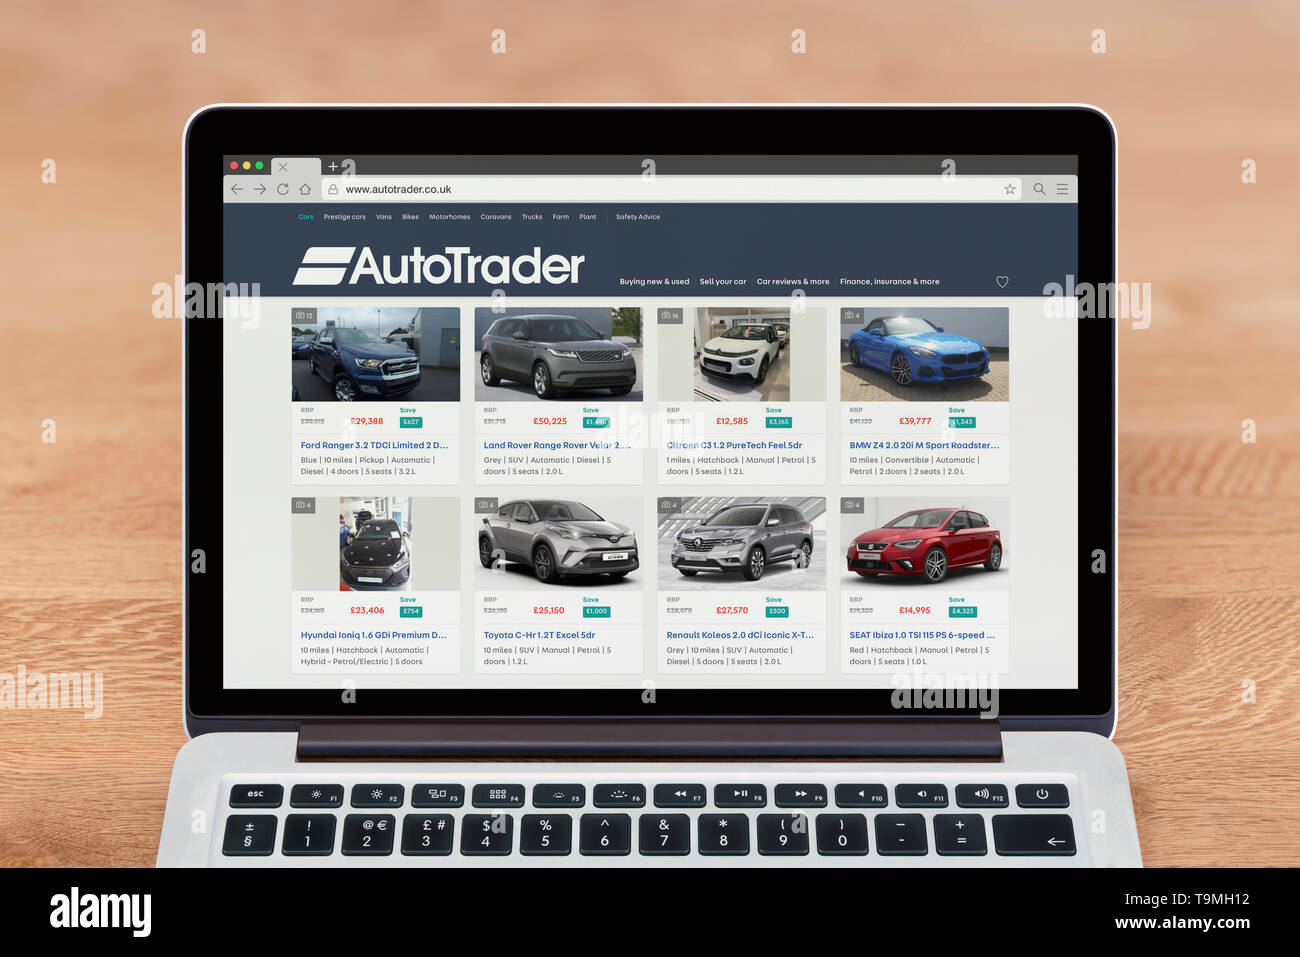 An Apple Macbook displays the Autotrader website (Editorial use only). - Stock Image